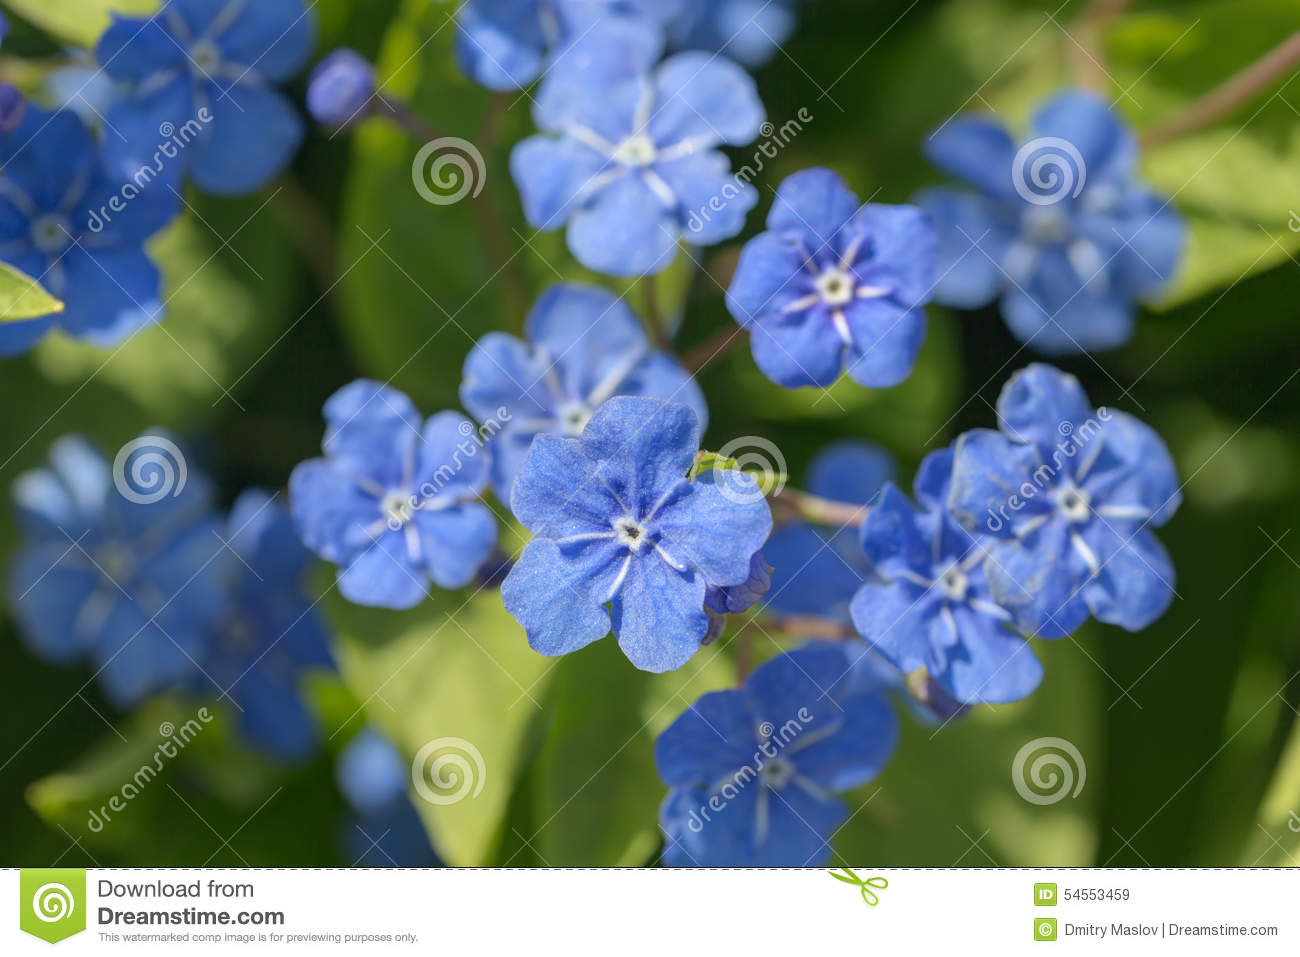 Small blue spring flowers stock photo image 84093588 small blue spring flowers royalty free stock images dhlflorist Choice Image